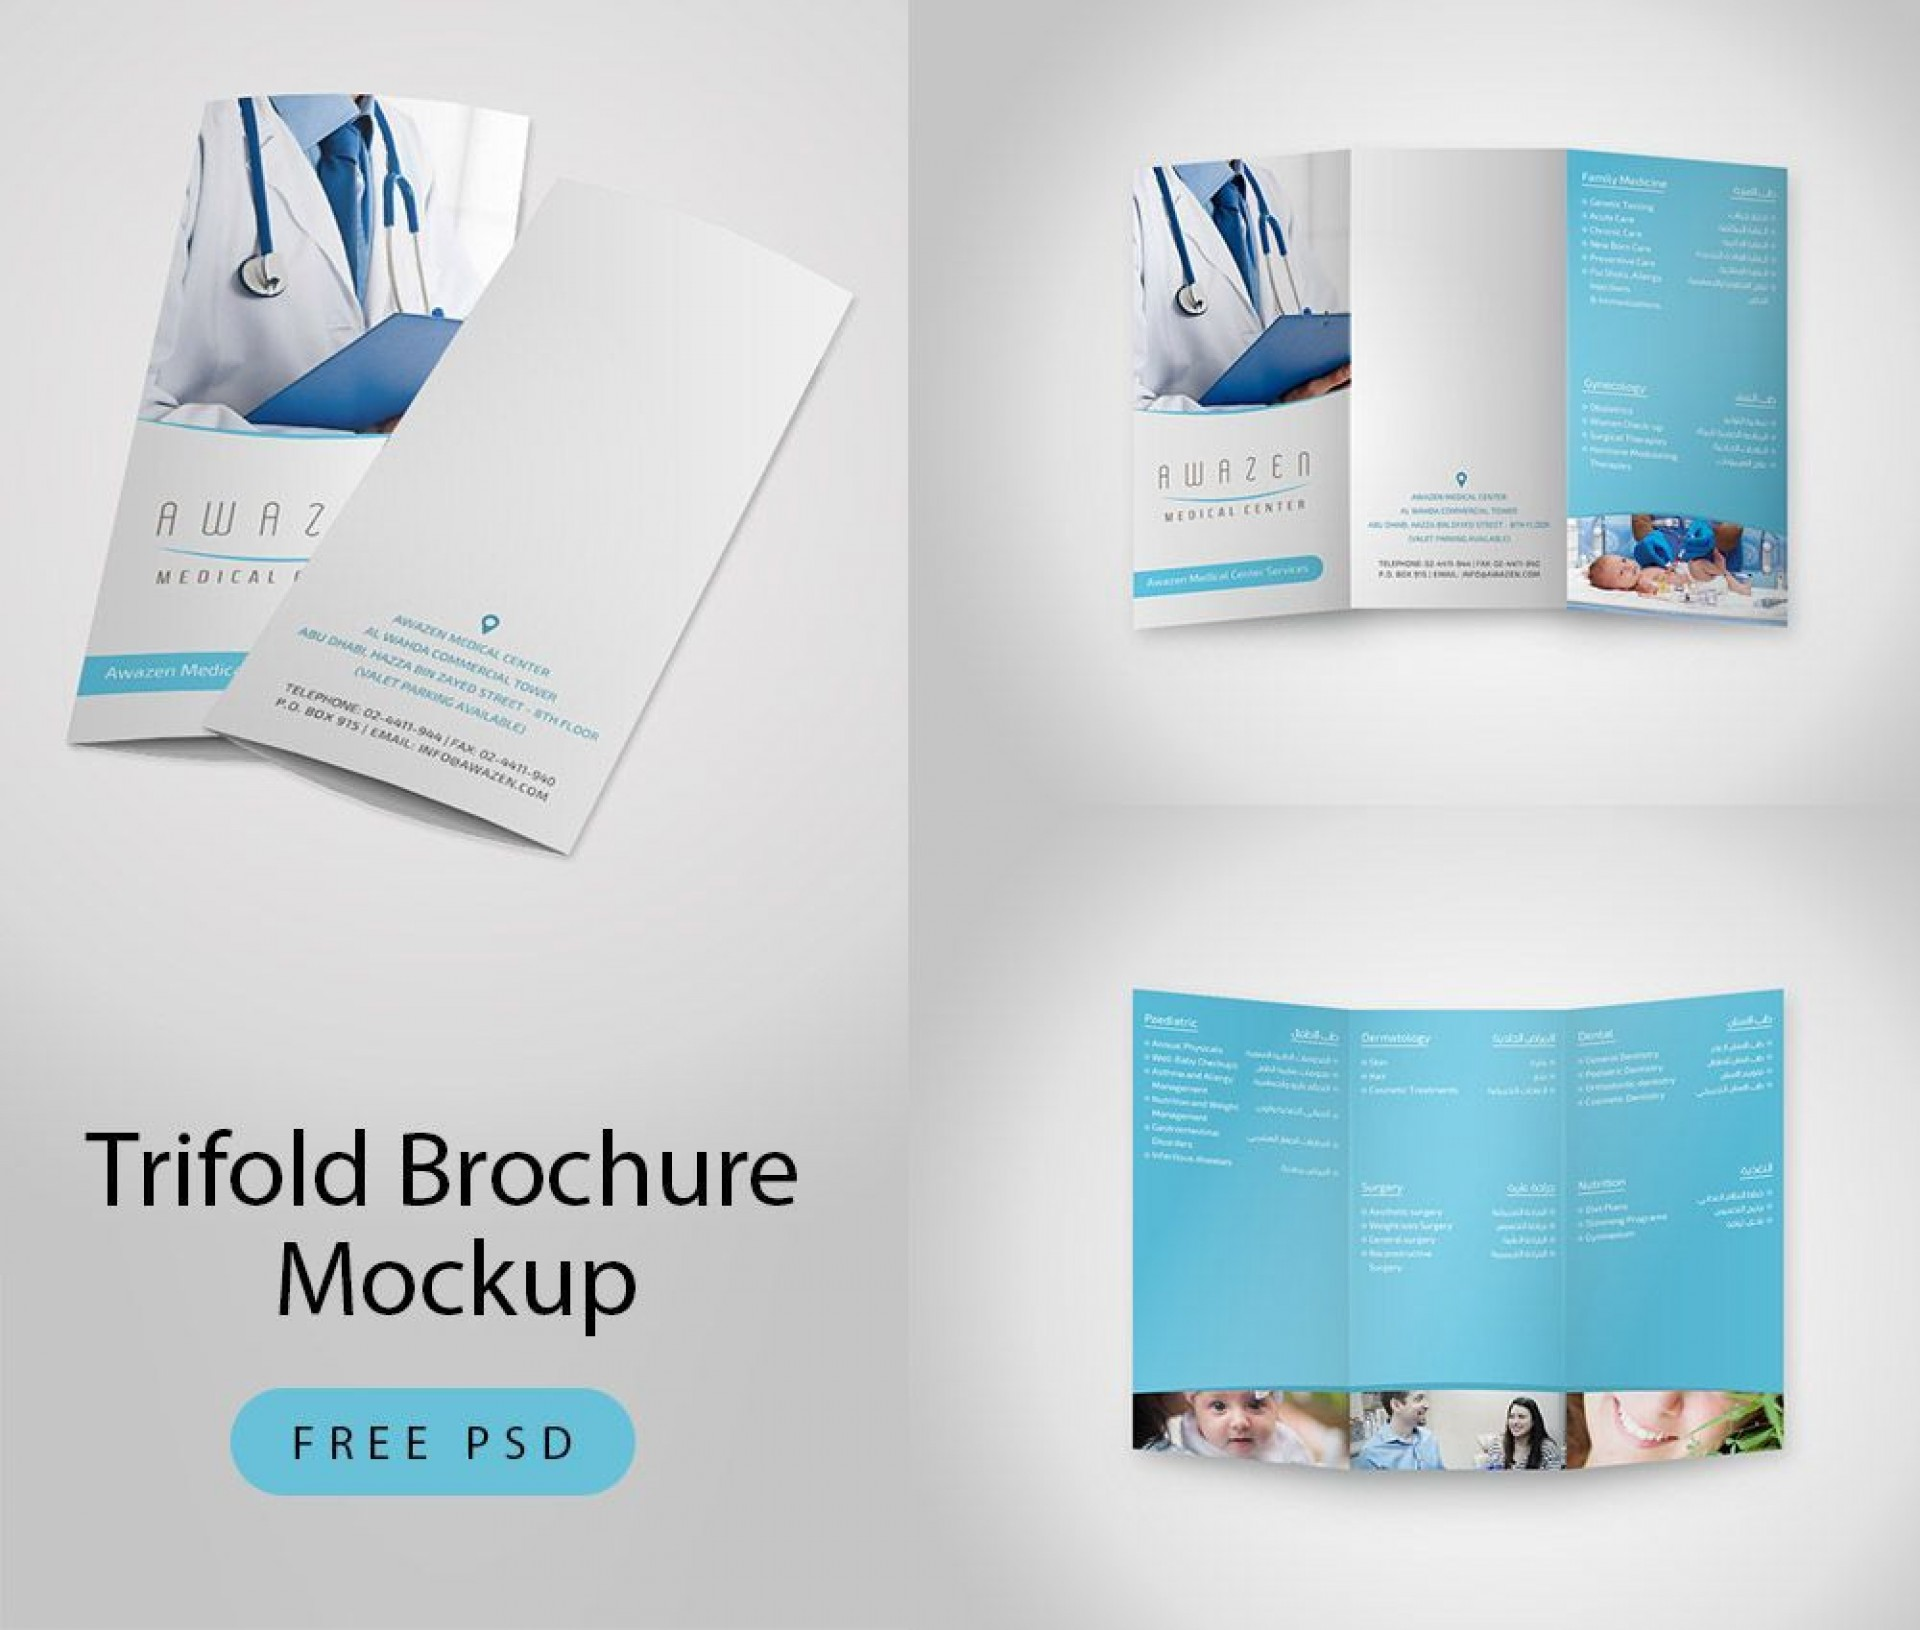 002 Awesome Brochure Template Photoshop Cs6 Free Download Concept 1920